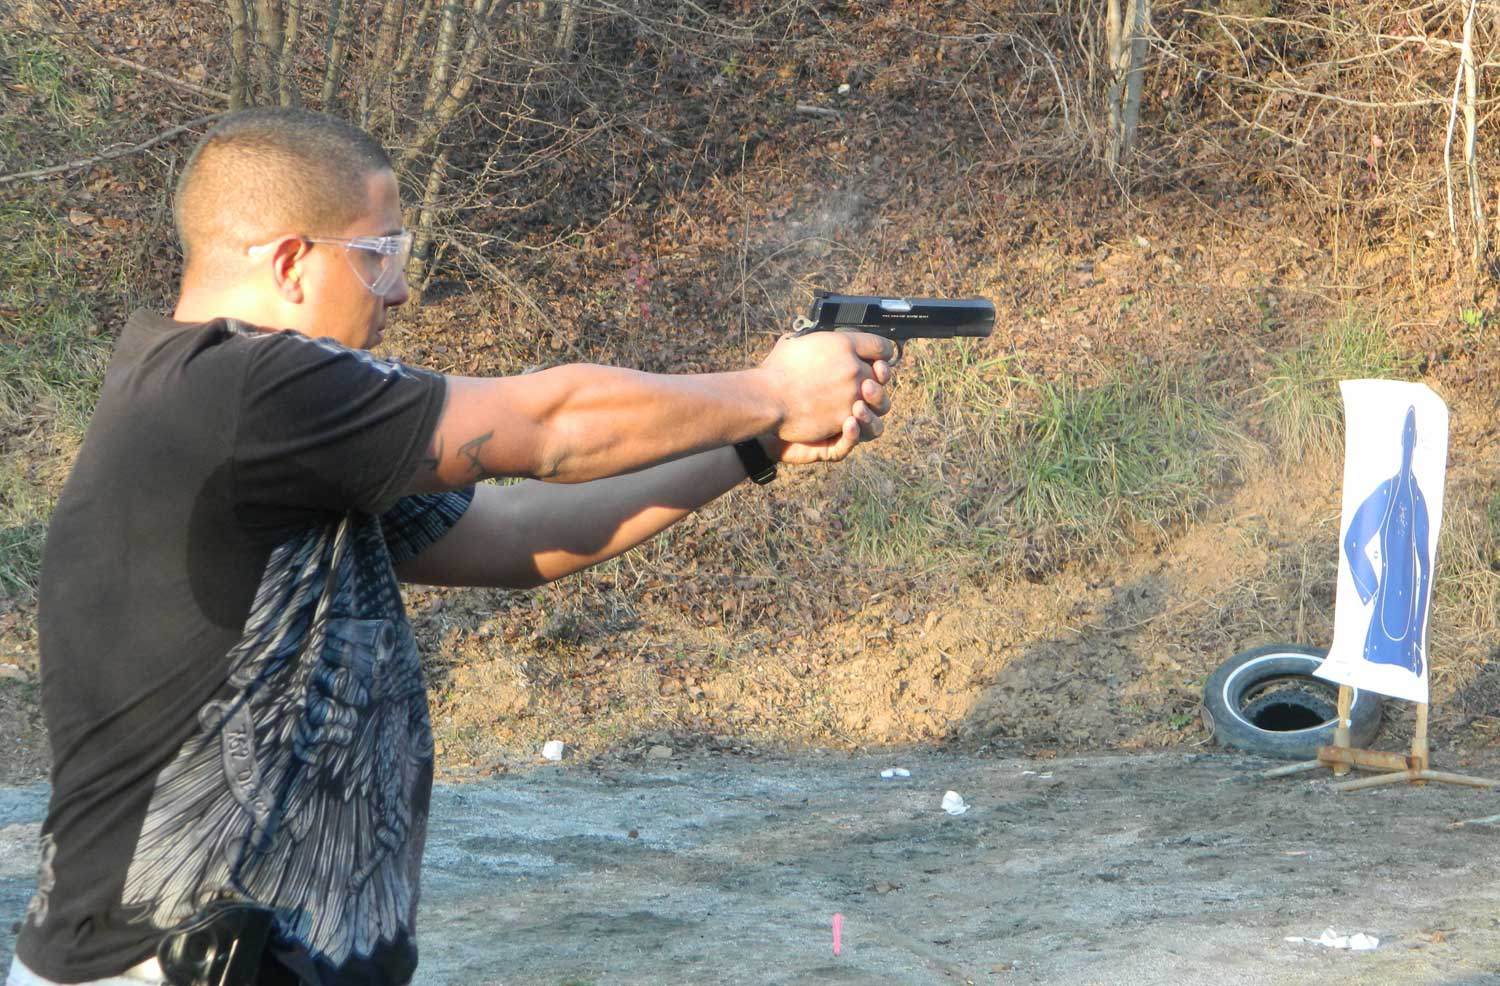 Man shooting a 1911 pistol in a concealed weapon permit class.